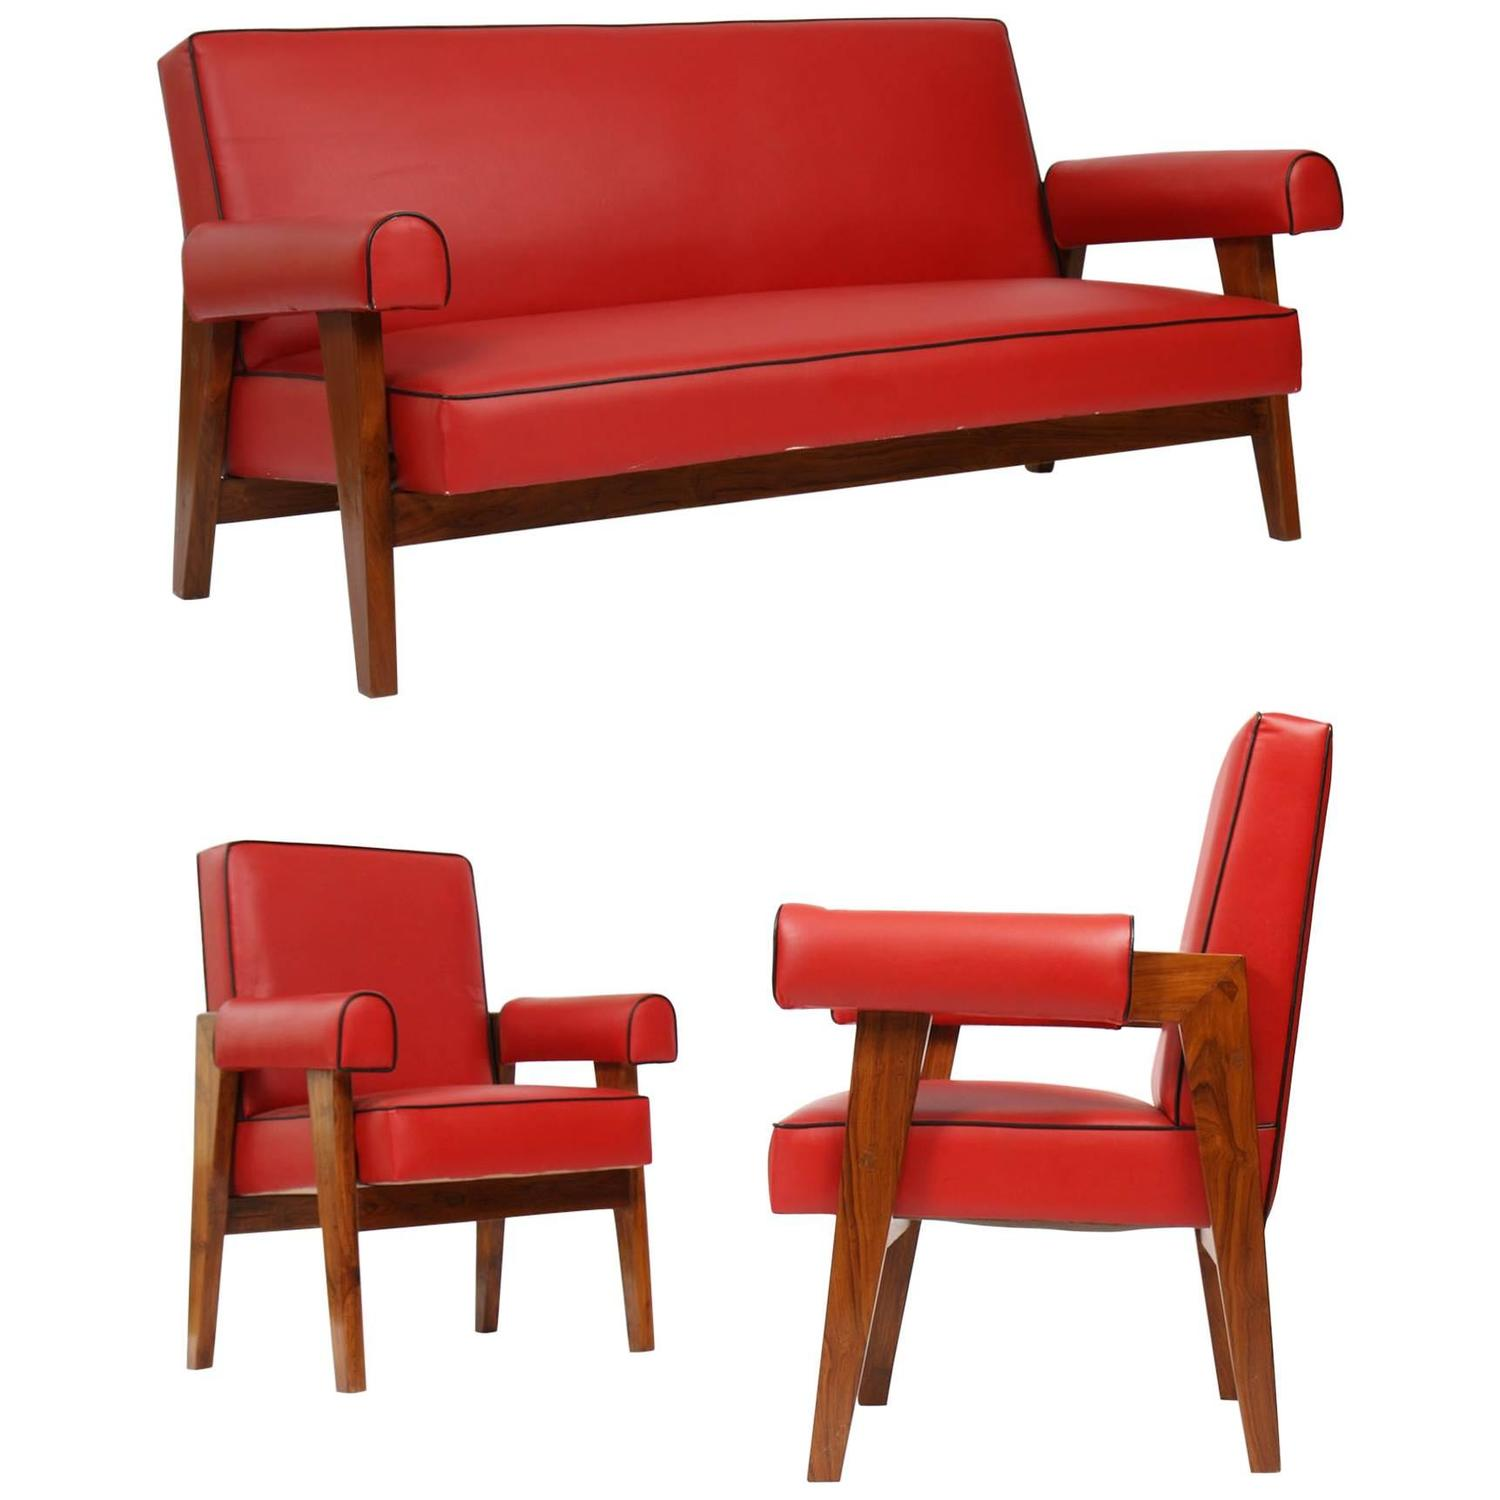 Used danish furniture uploaded by admin in modern furniture category - Le Corbusier 1887 1965 Pierre Jeanneret 1896 1967 Furniture